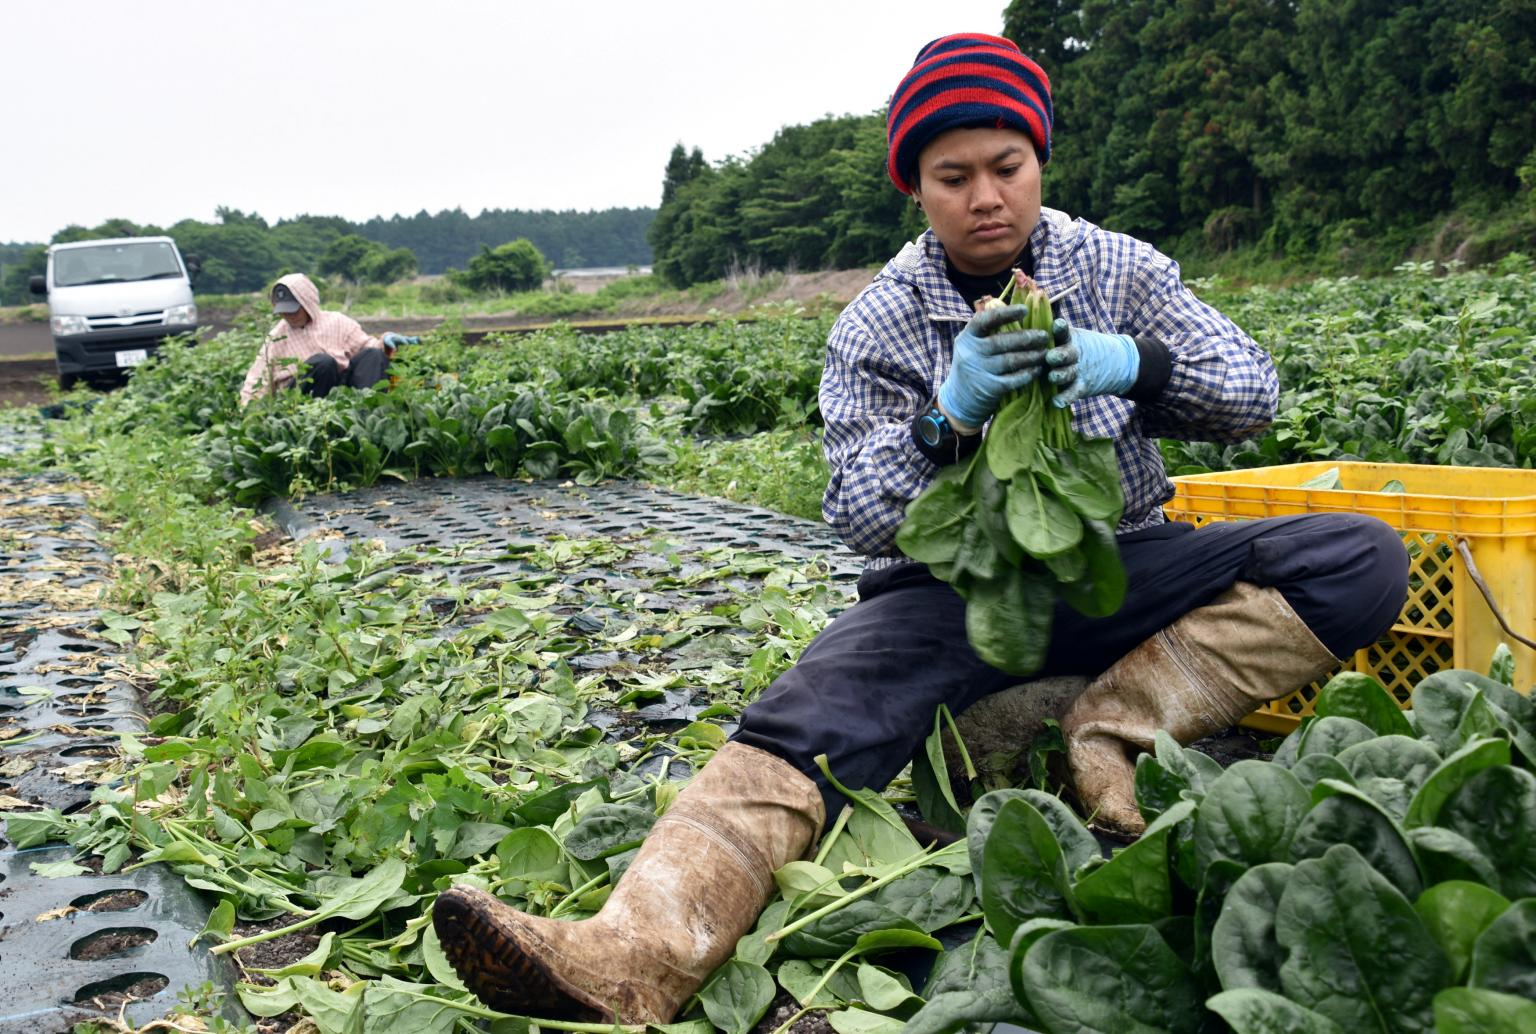 Demand for foreign workers may soften Japan's immigration rules